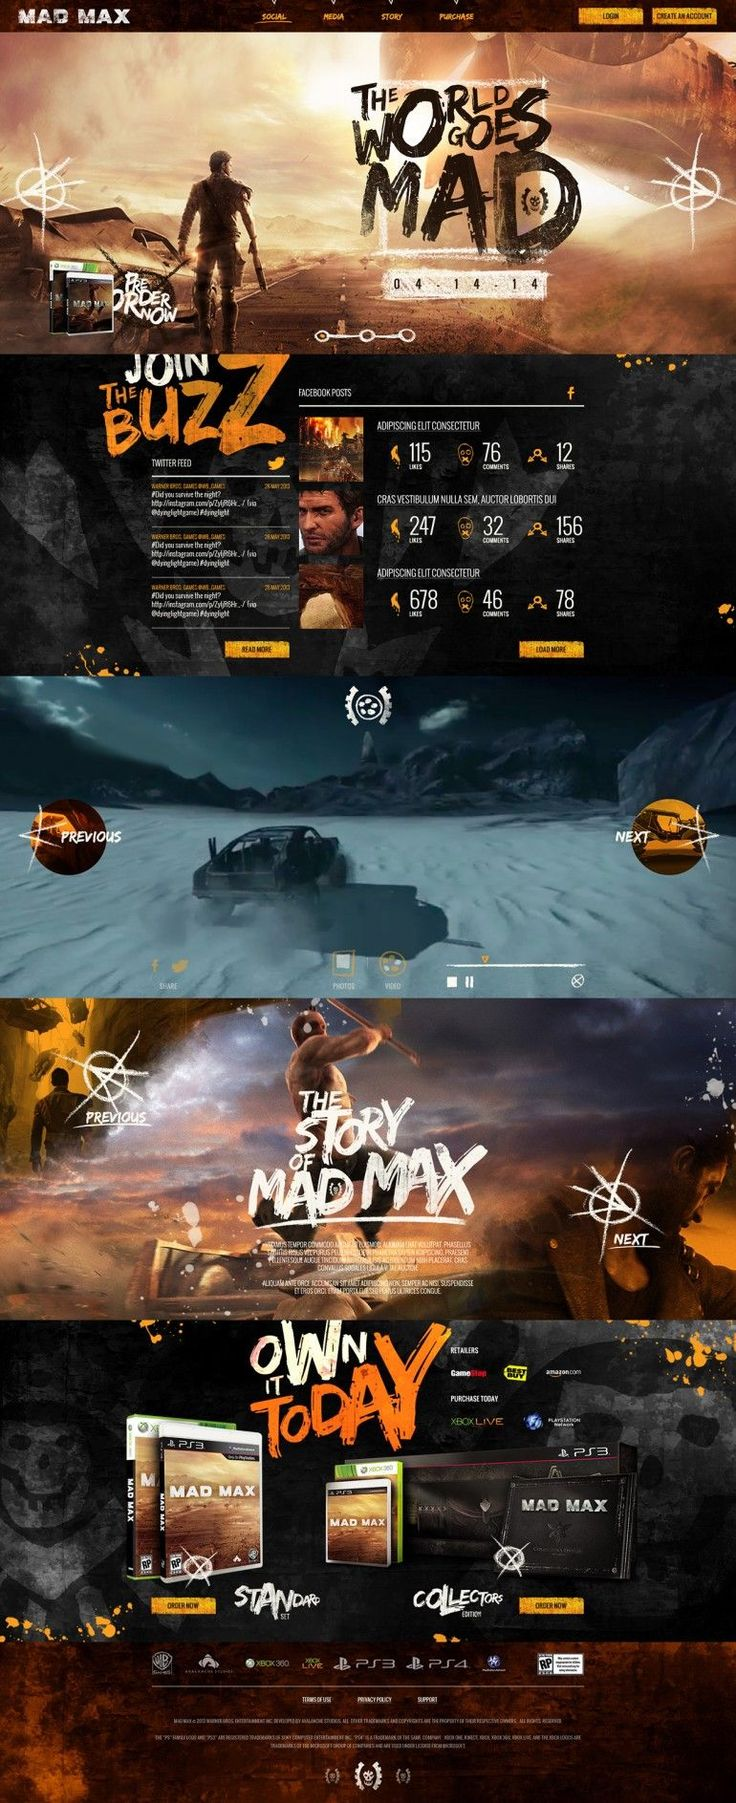 MAD MAX Game Everybody with a business needs to have marketing platform that would provide a website, with lead capture up to 10K leads, sales funnels, play videos, and work on PC, Tablet and notepad for less than US$50.00 monthly fee. Join us for the FREE webinar about building your marketing platform.  Click on the link. http://brdcst.me/signup/?w=1950